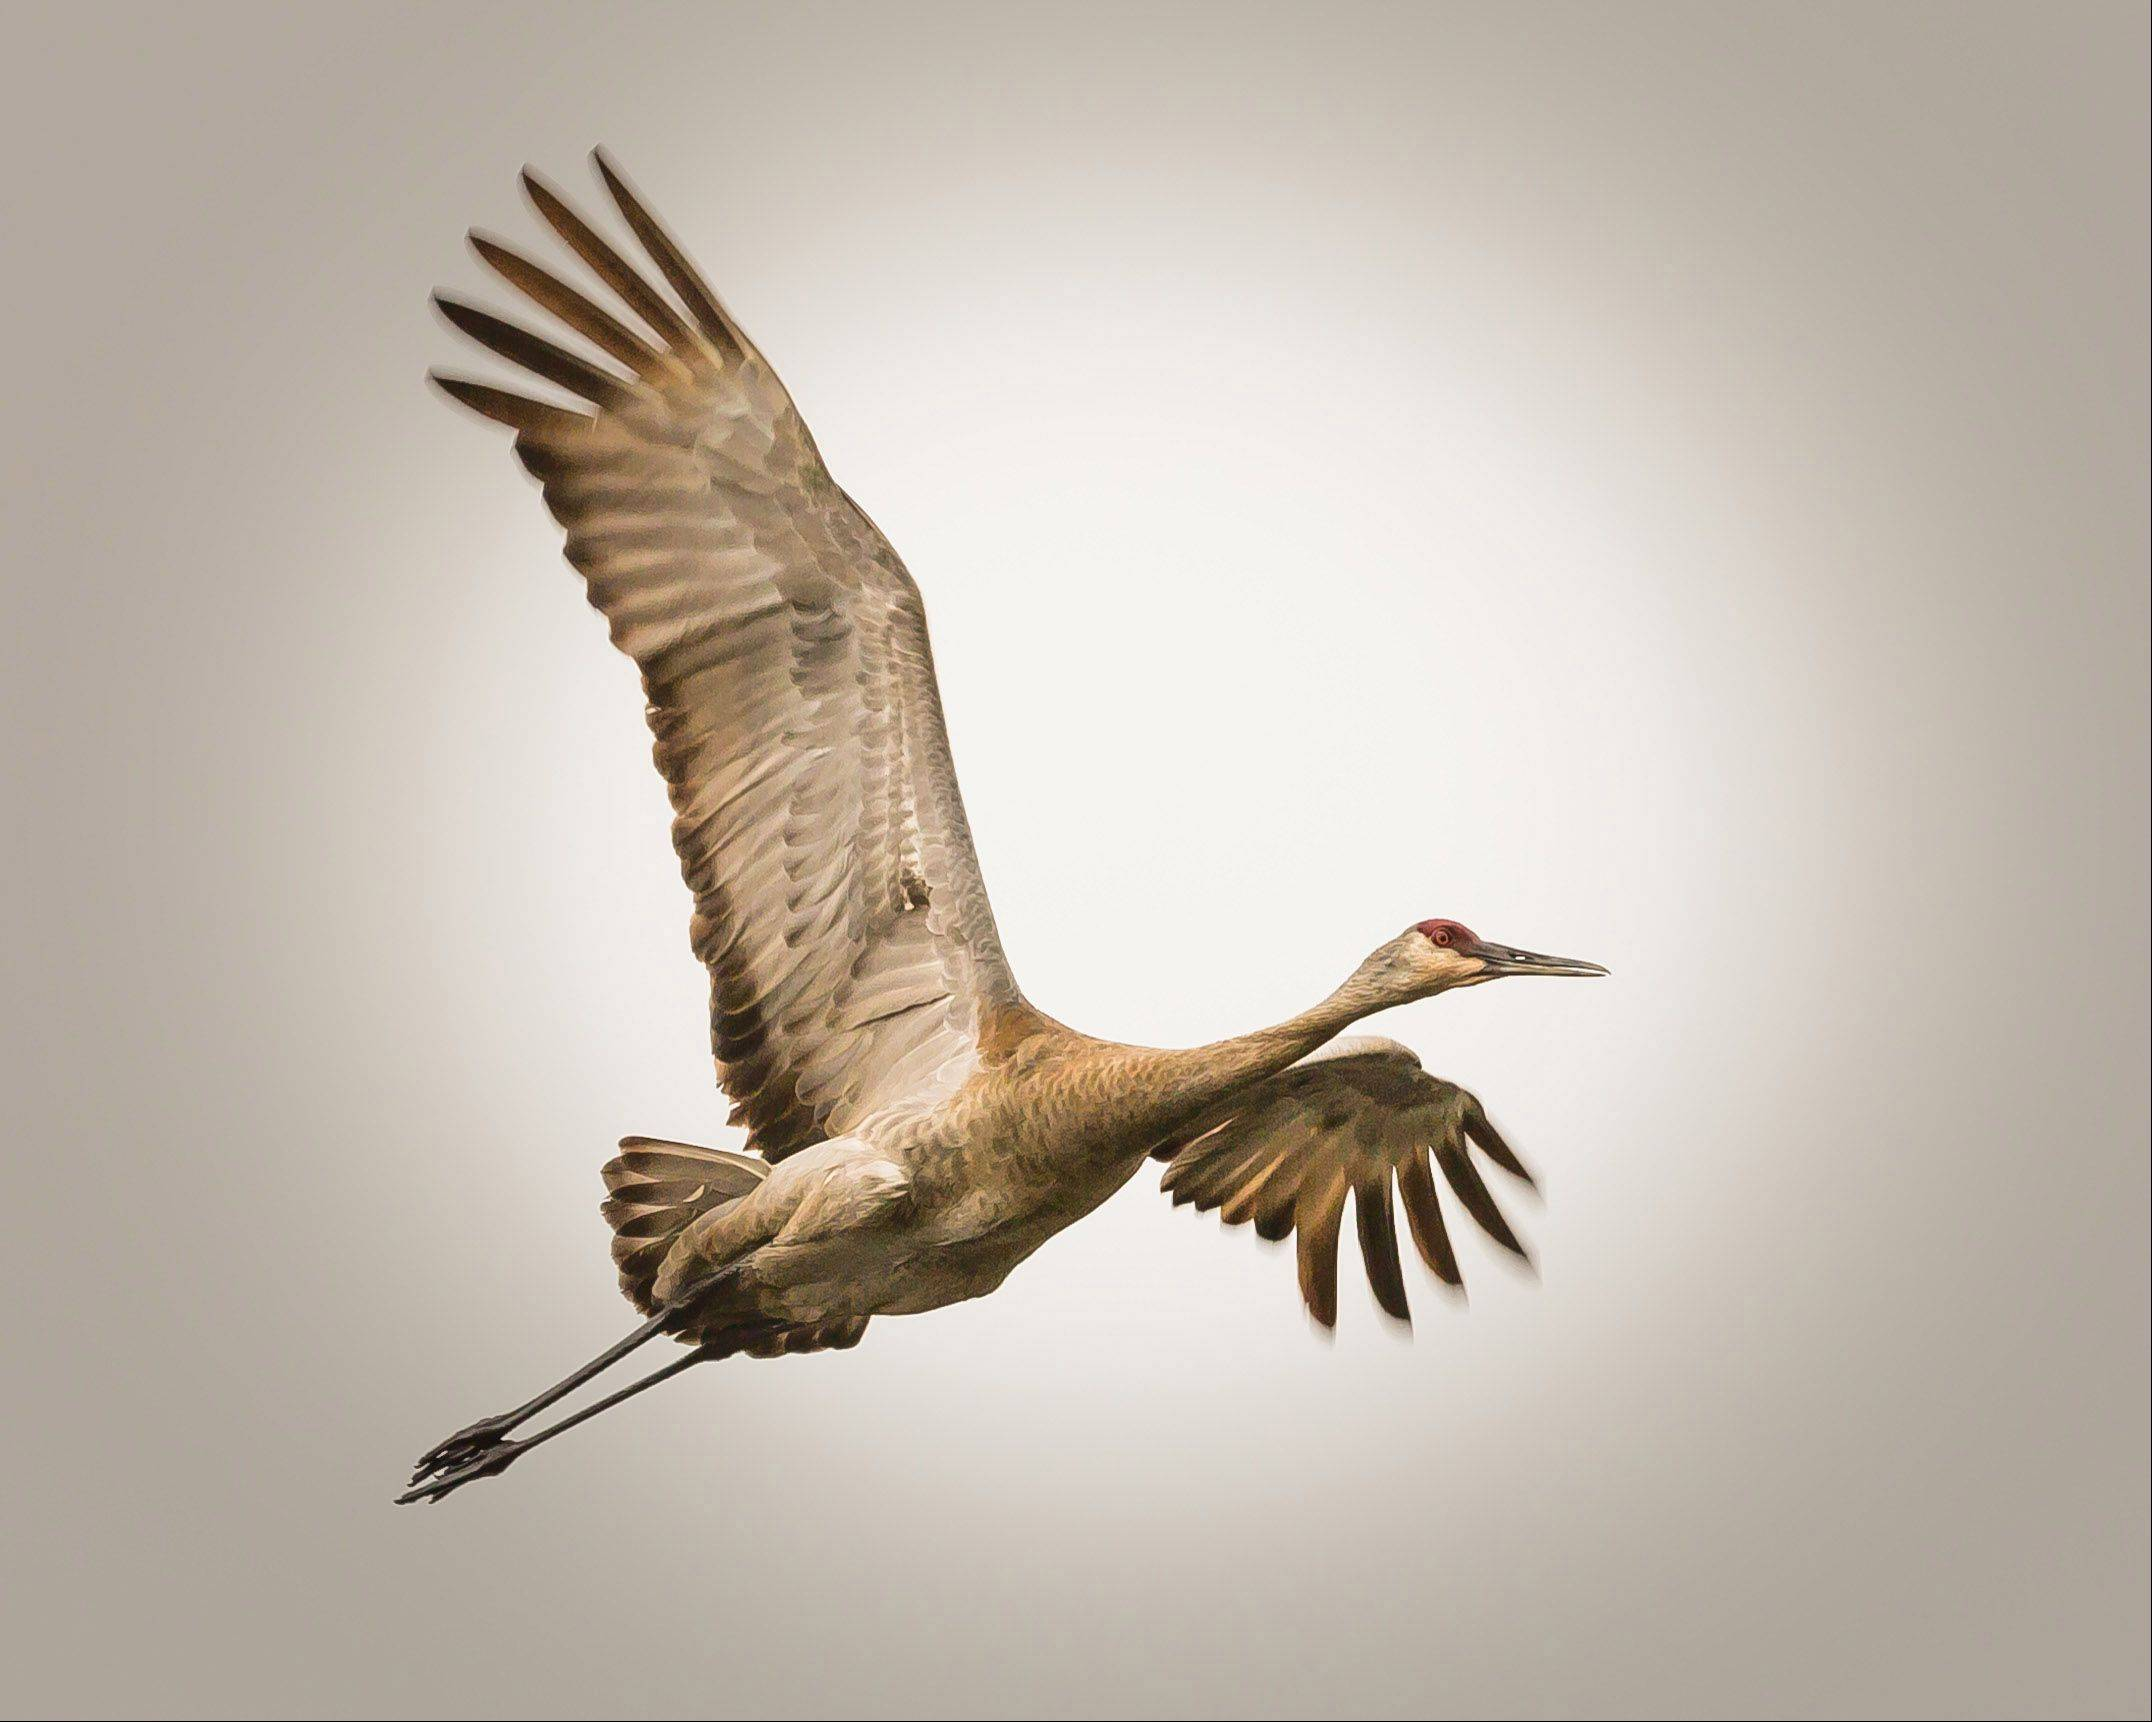 A sandhill crane at Volo Bog State Natural Area in Ingleside on May 10th.